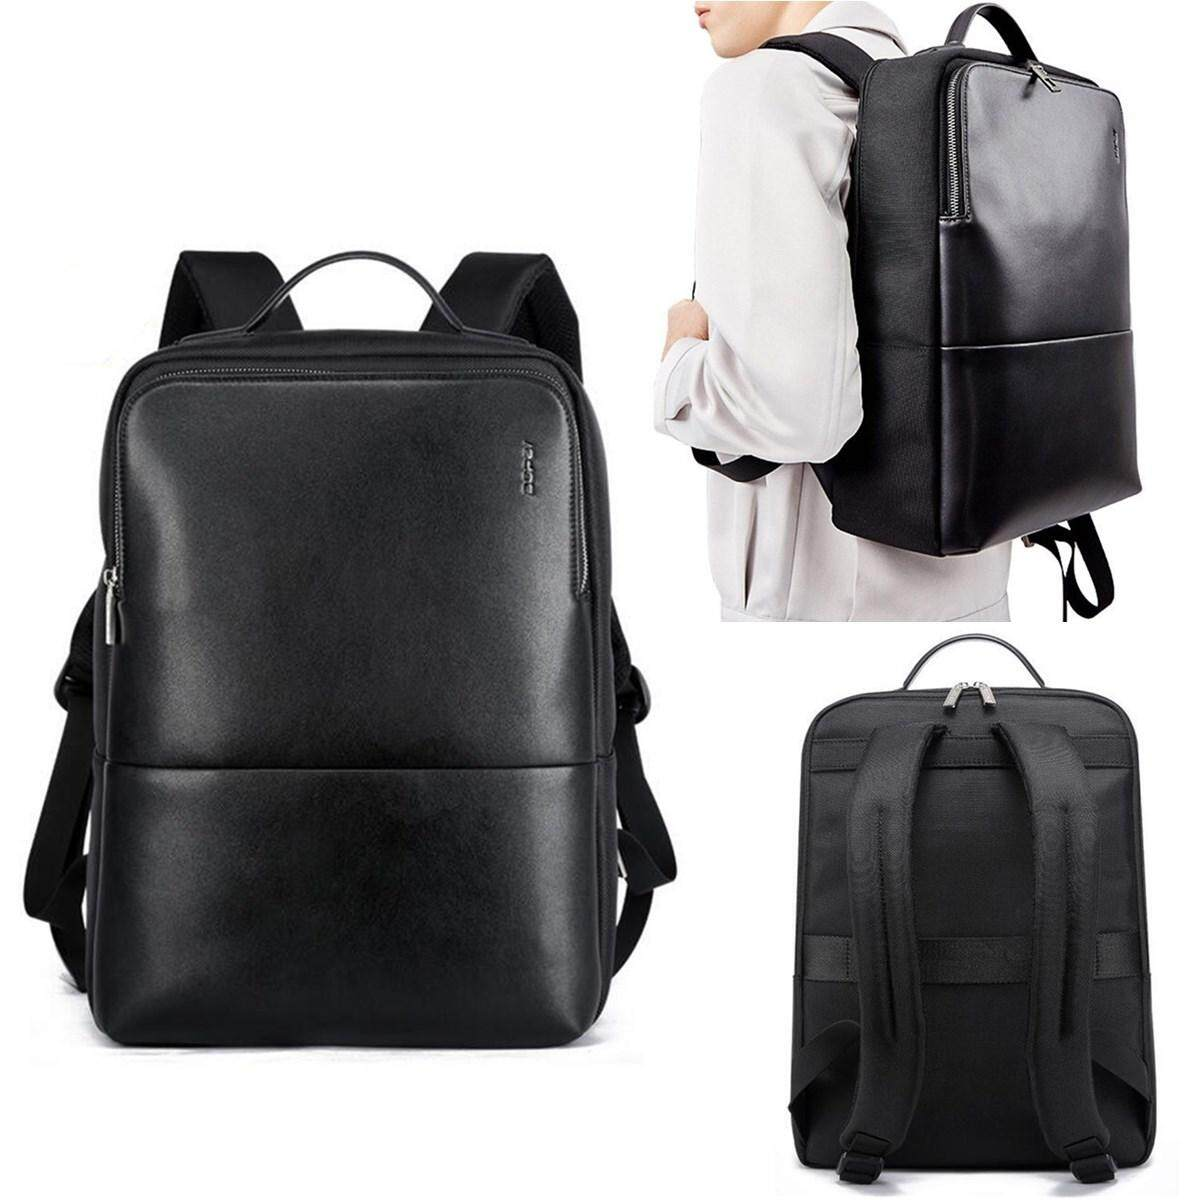 Bopai Leather Backpack for Men 14